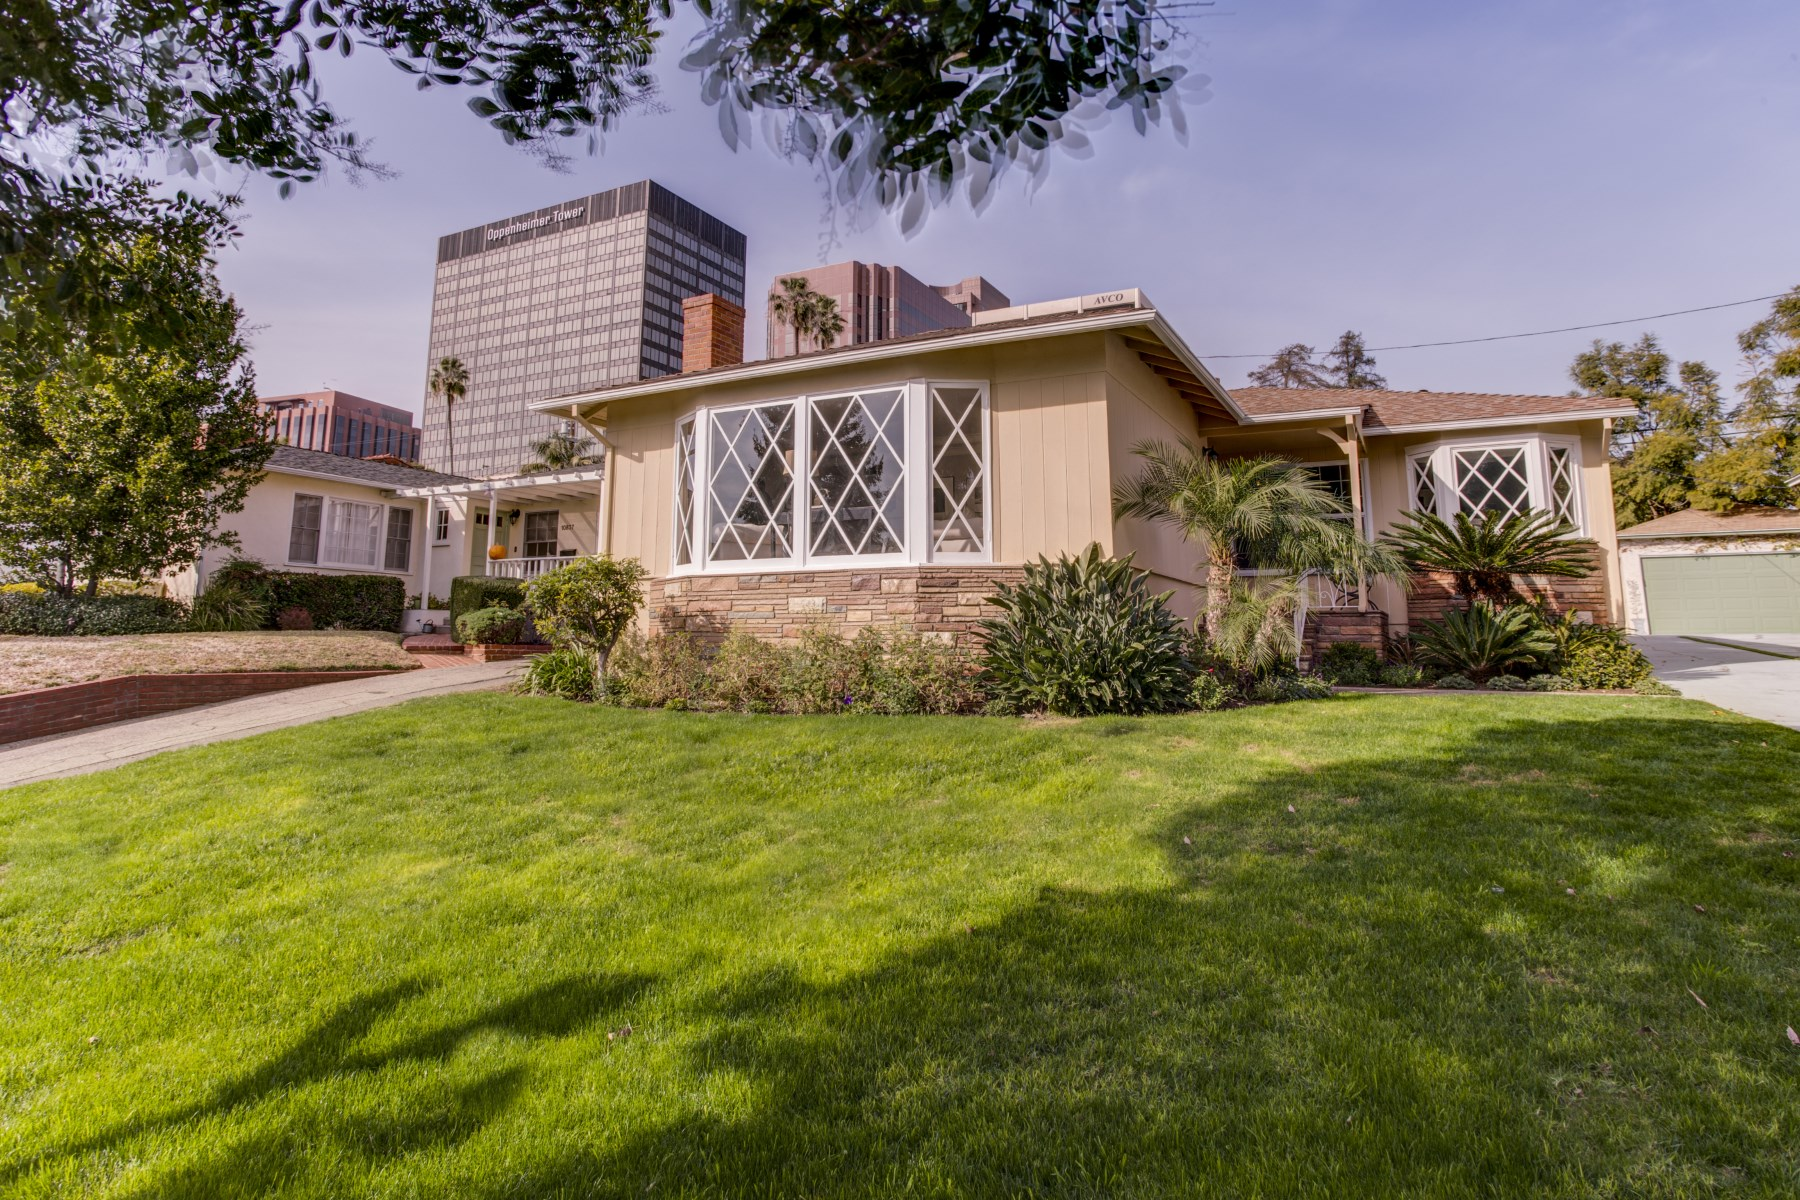 Single Family Home for Sale at Great Location, Close to Everything. 10833 Wellworth Avenue Westwood, Los Angeles, California 90024 United States